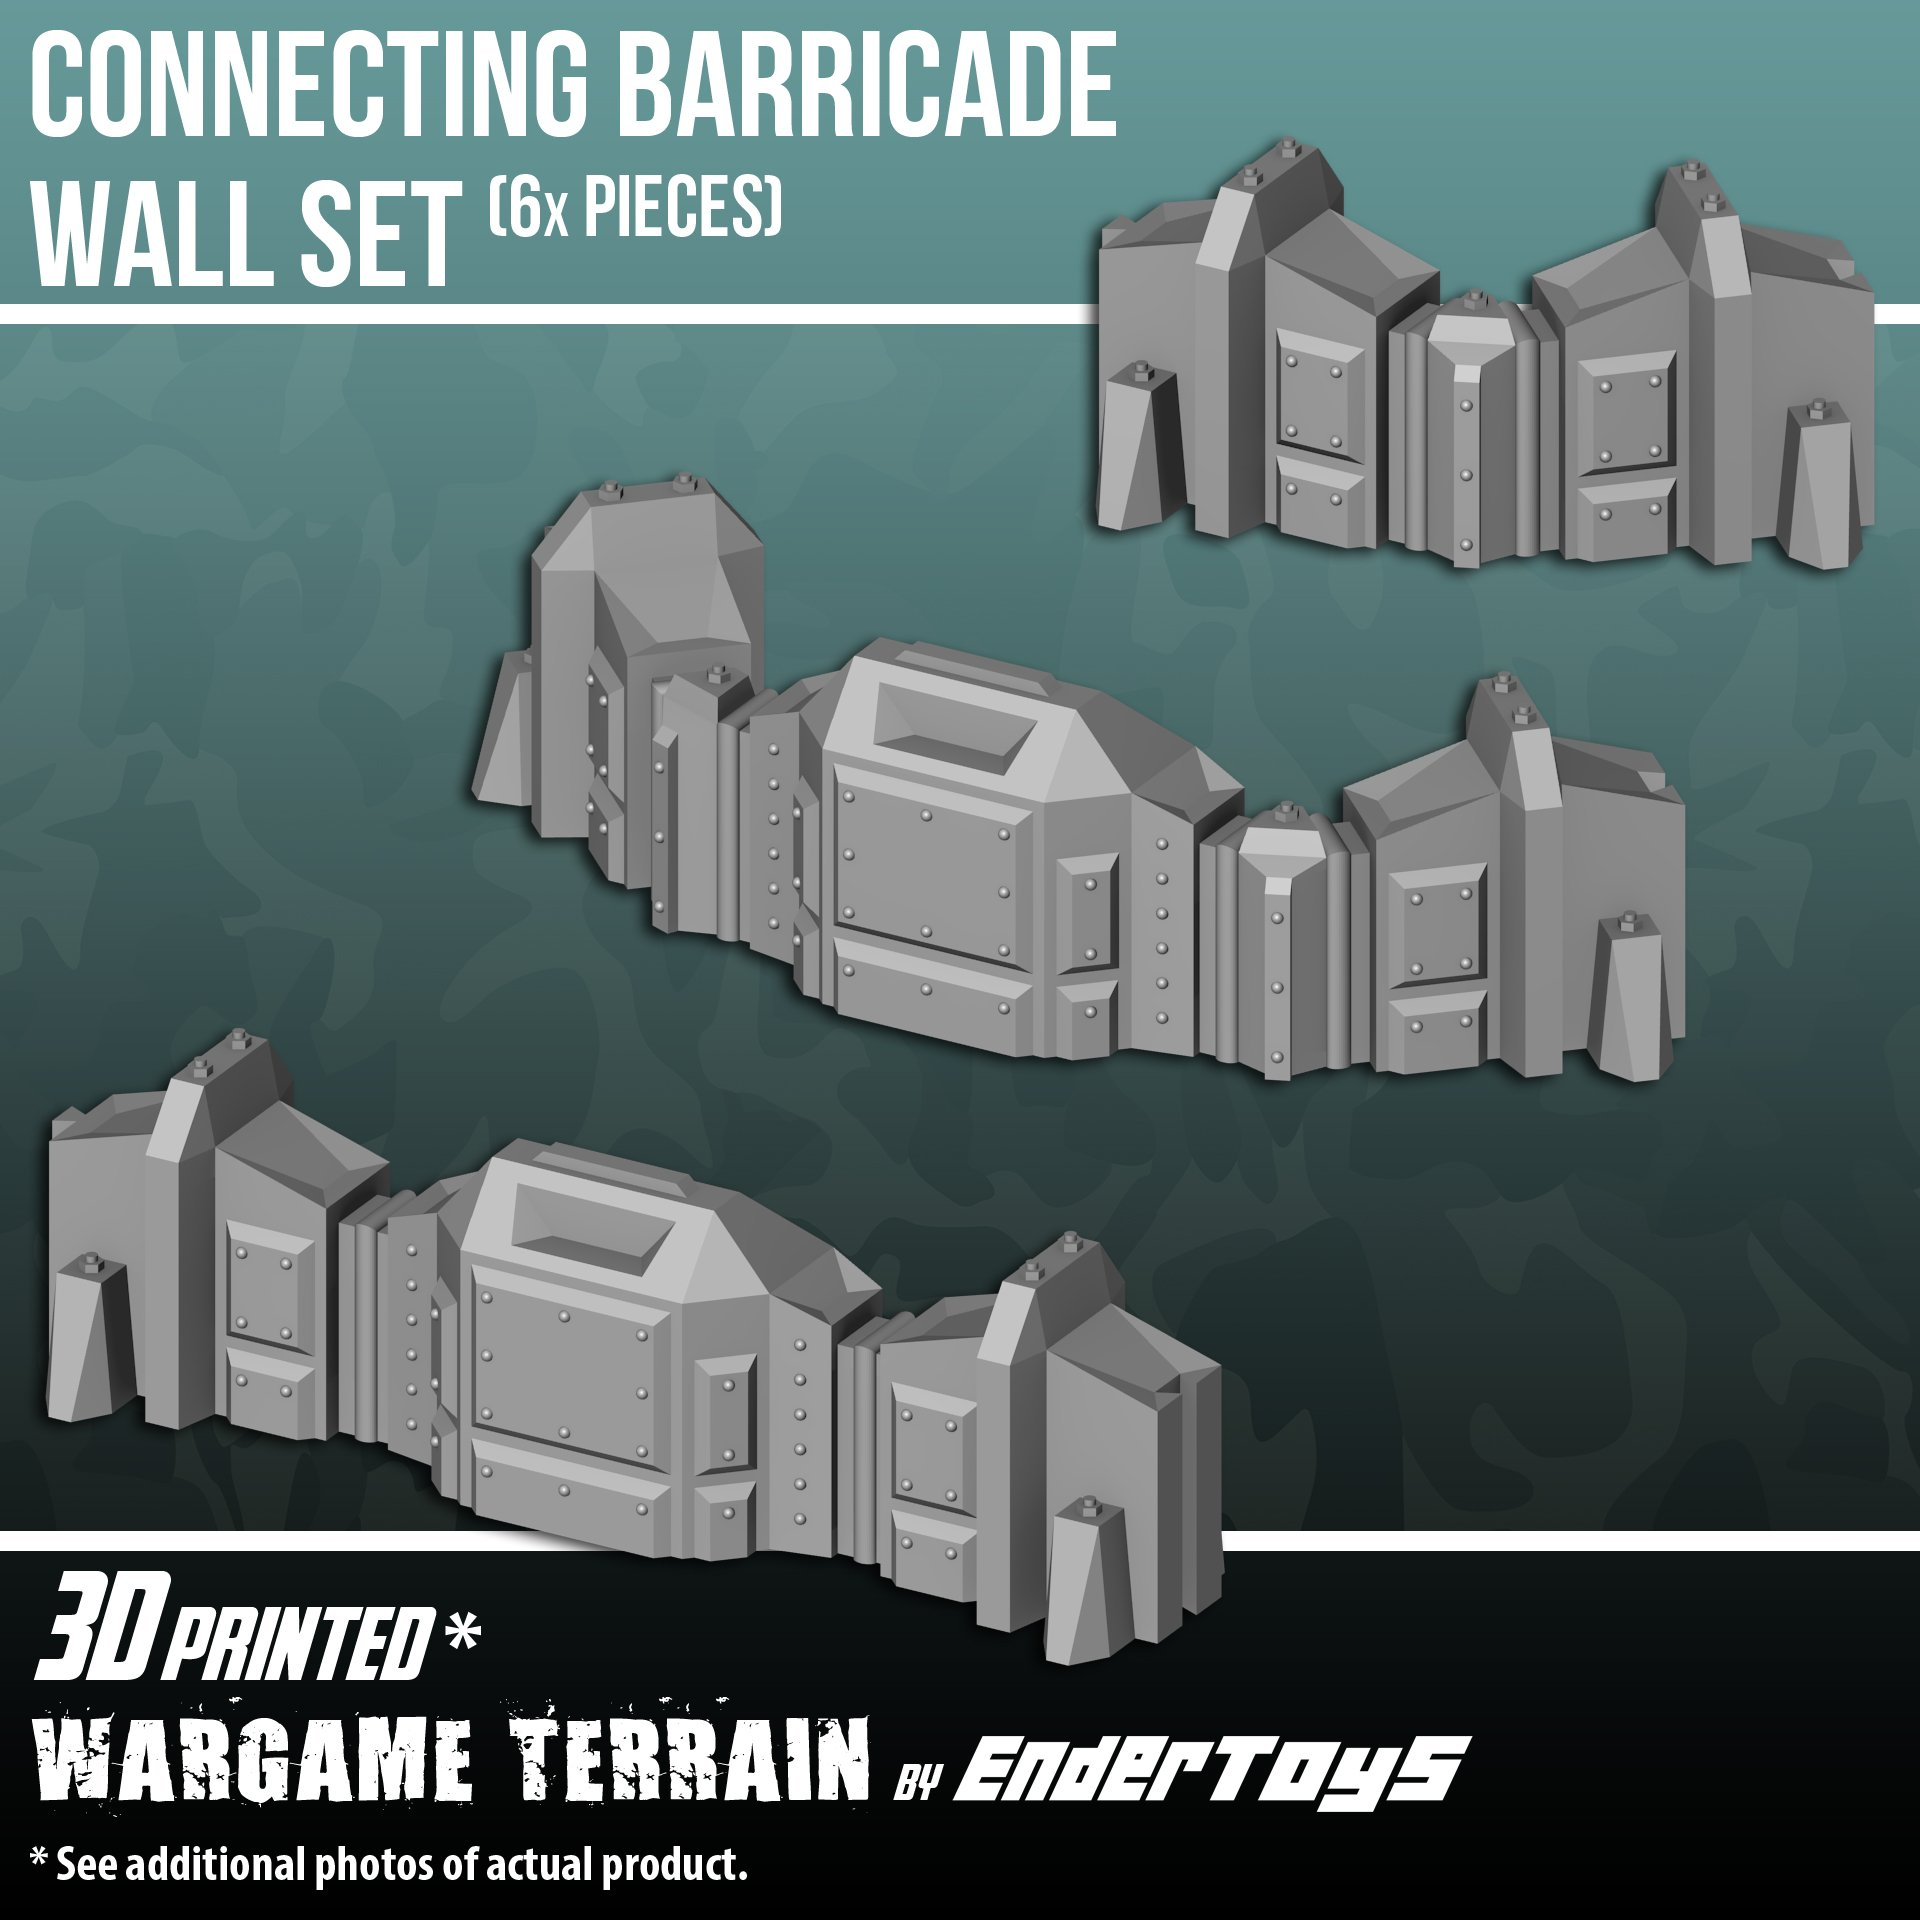 EnderToys Connecting Barricade Wall Set, Terrain Scenery for Tabletop 28mm Miniatures Wargame, 3D Printed and Paintable